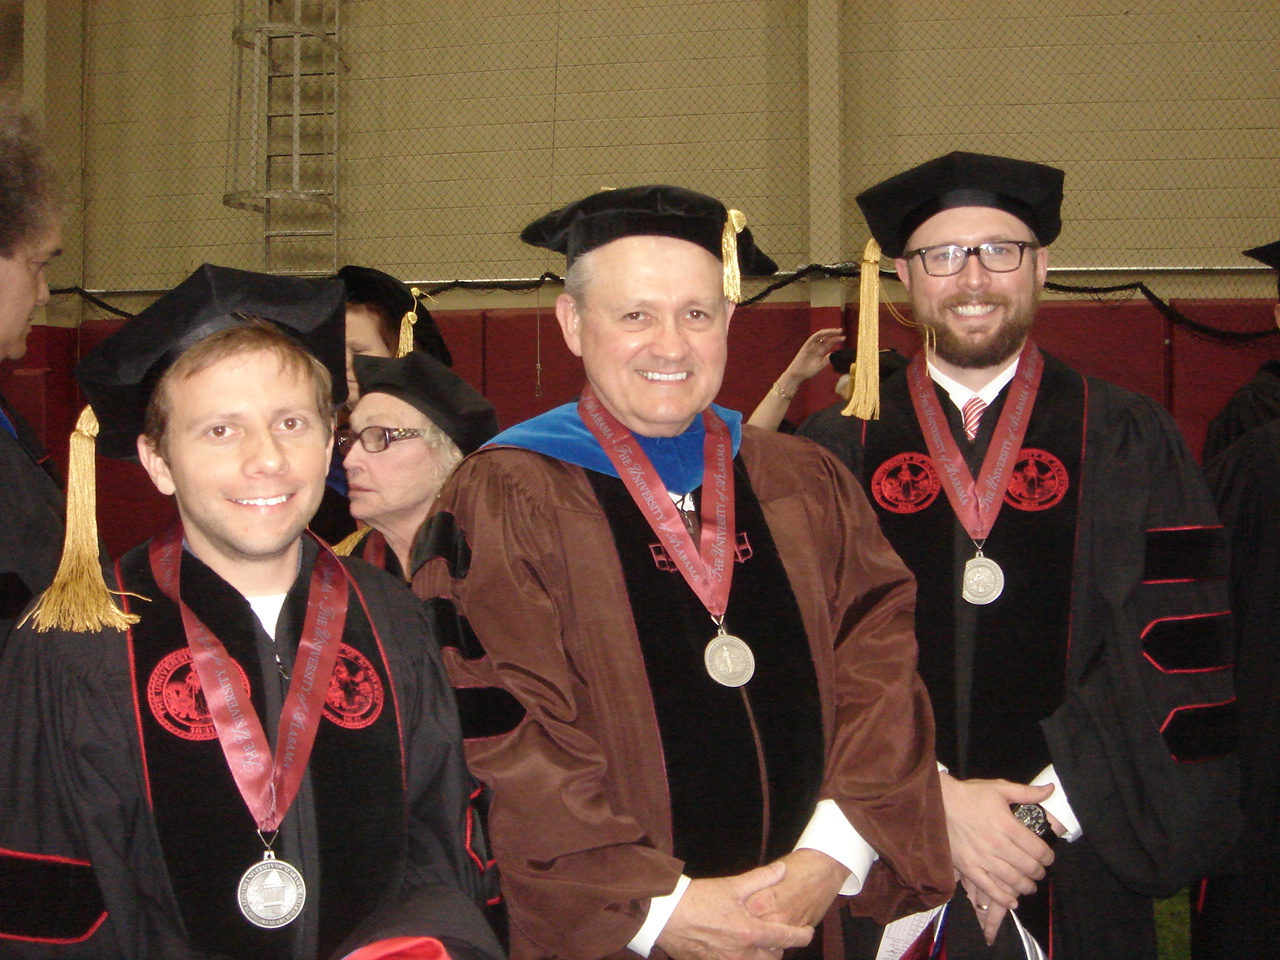 three men in academic regalia